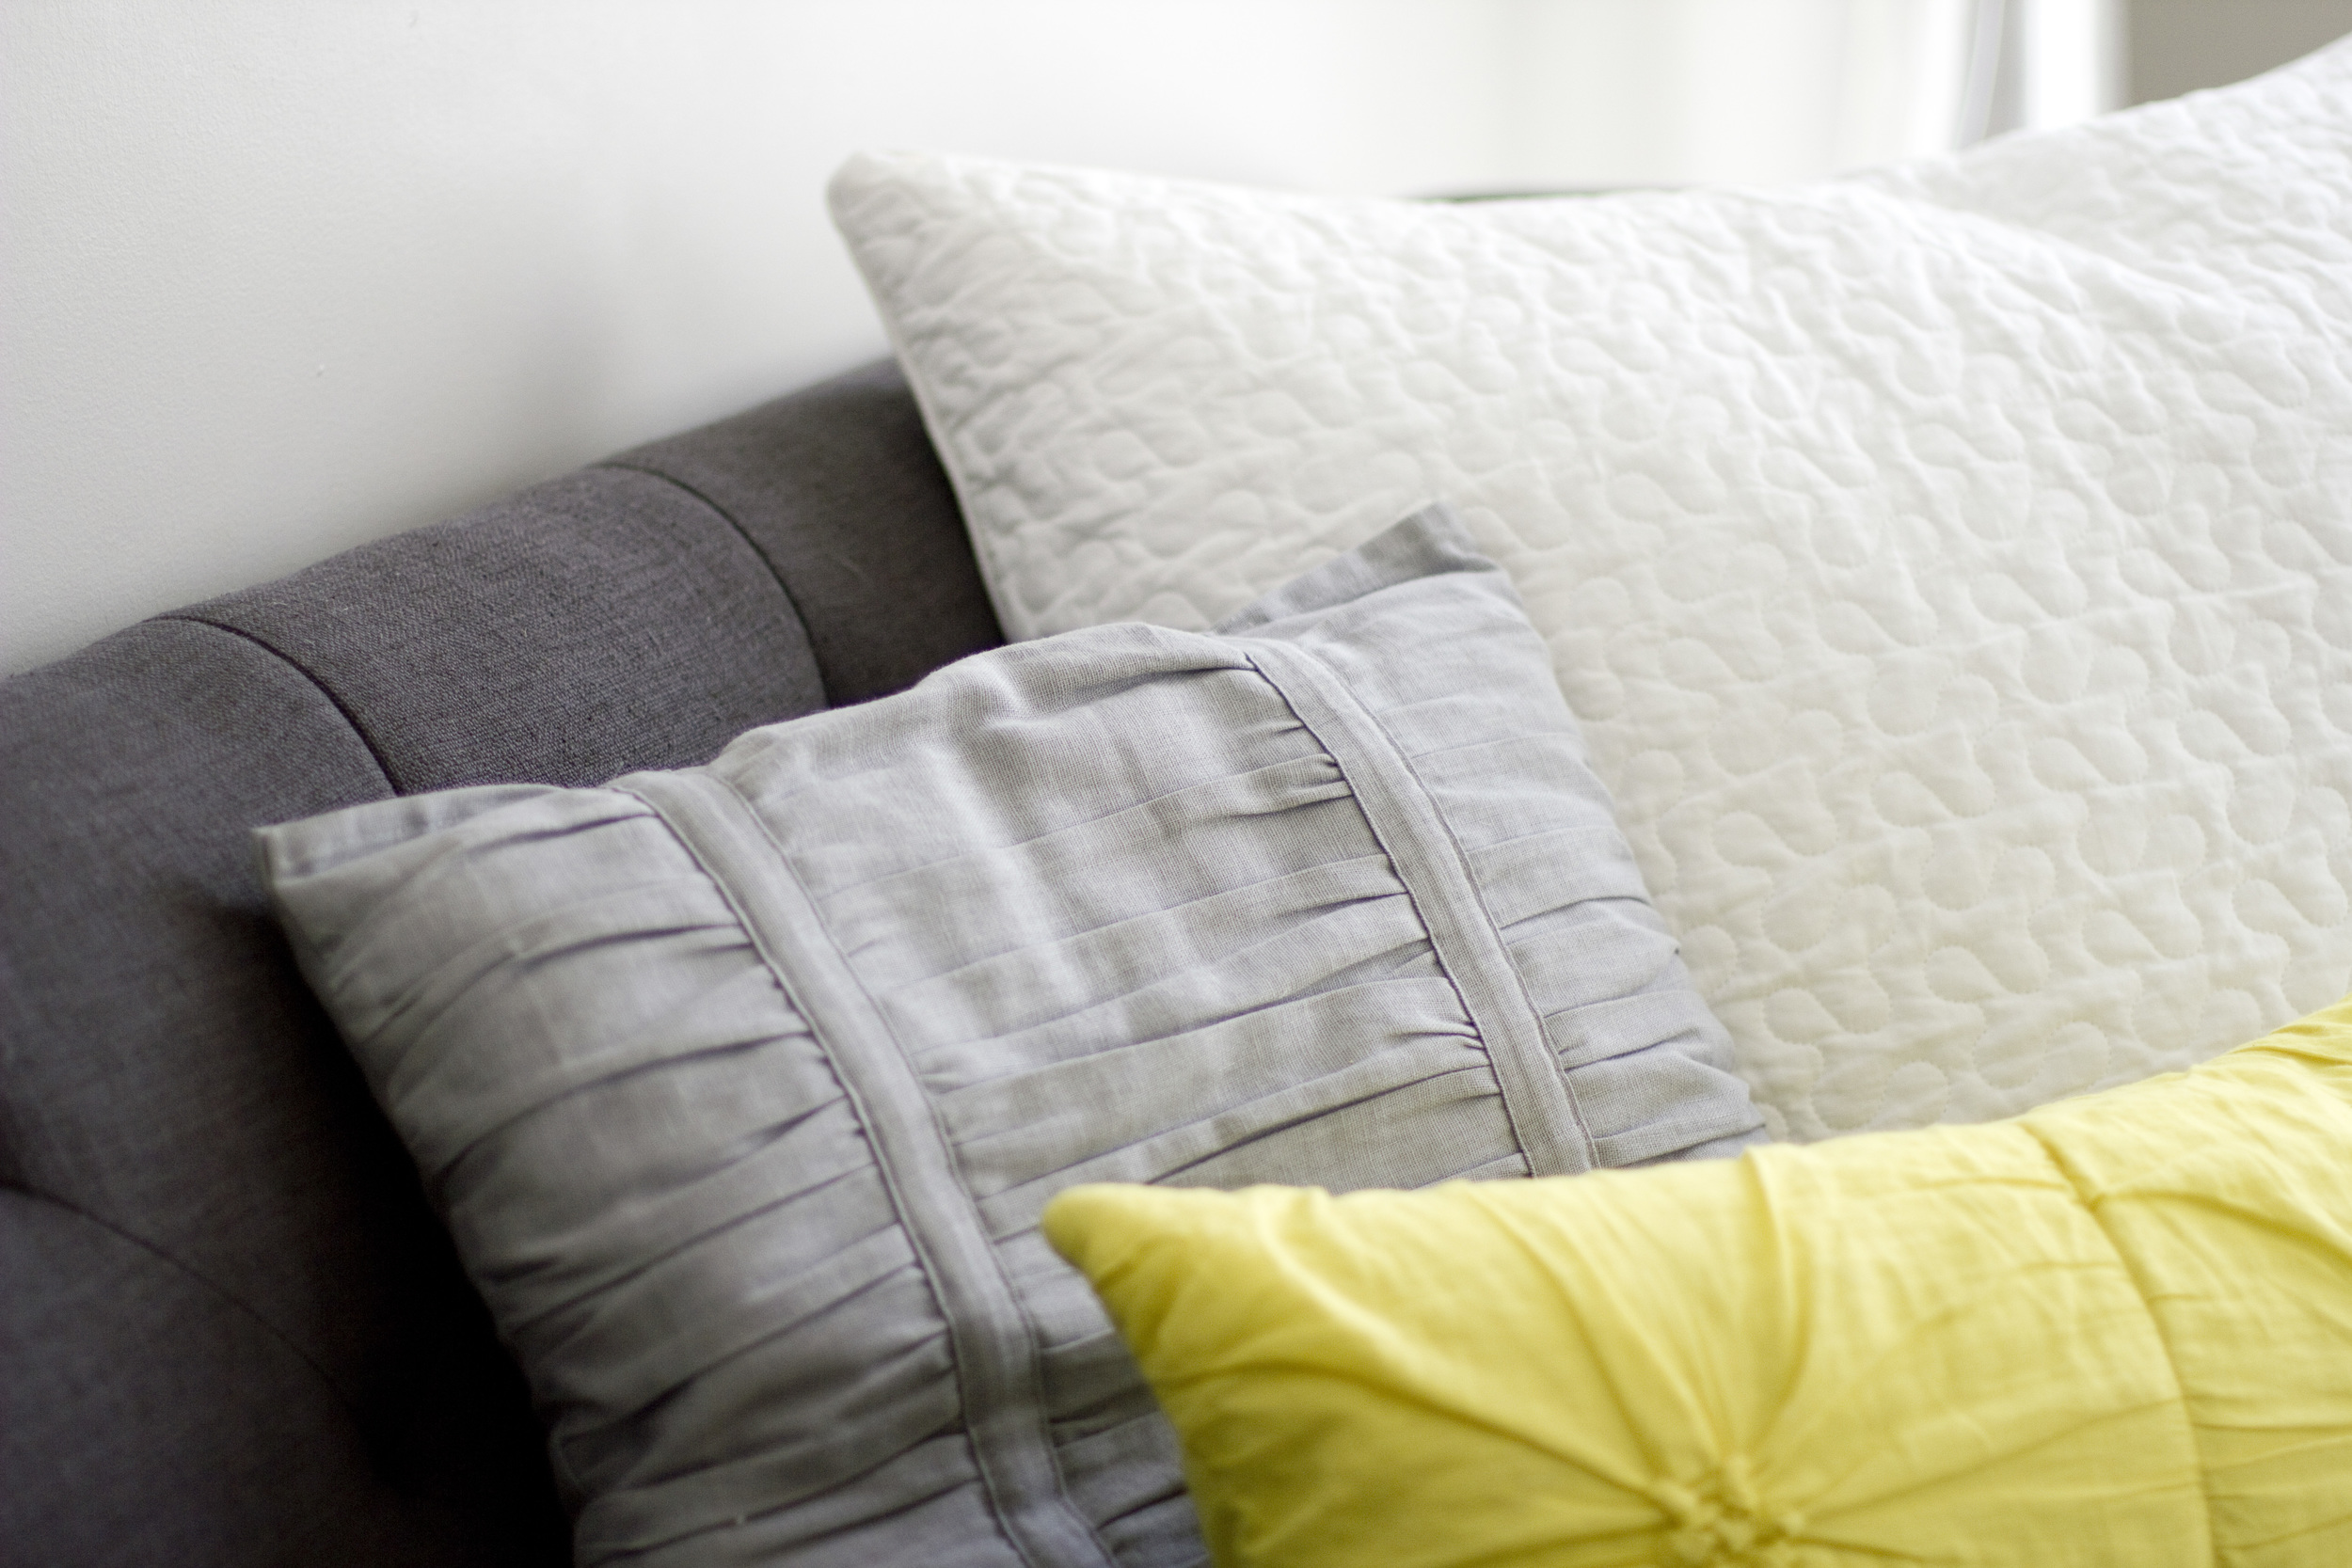 Pillows! White one was in theIKEA clearance bin, gray one was homemade from somecurtains. Yellow one was a sham cover from Target that I cut in half and sewedinto two pillows. I found some down inserts at Crate & Barrelthat were the exact size I needed. The insertswere only like $11 each, so it was very affordable.